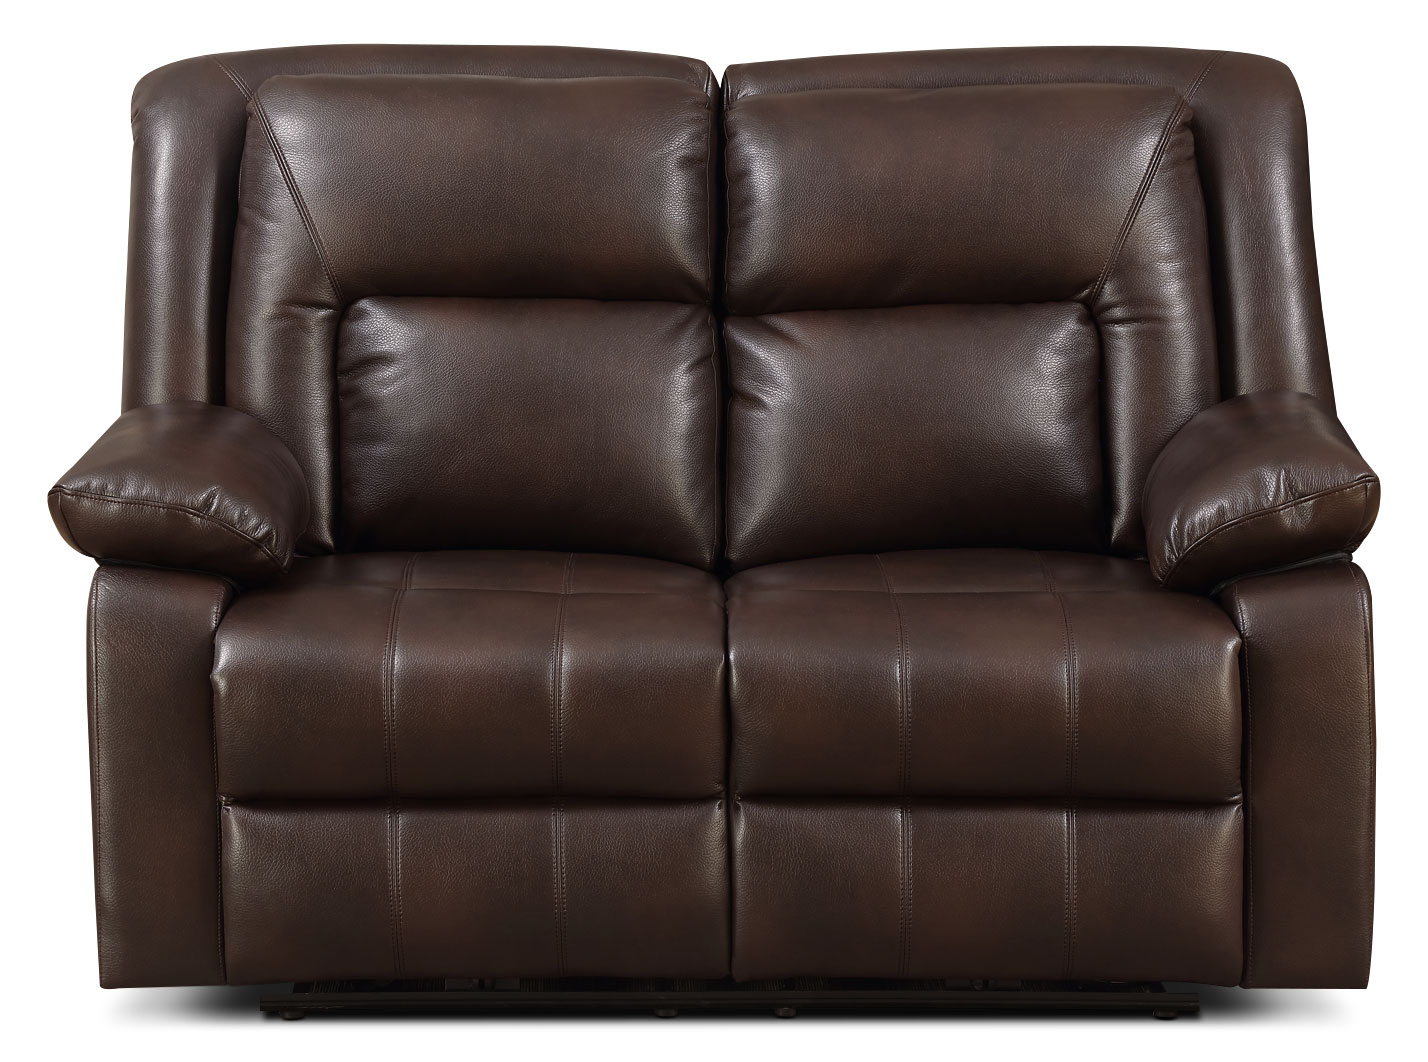 Blane Leather-Look Fabric Power Reclining Loveseat – Brown